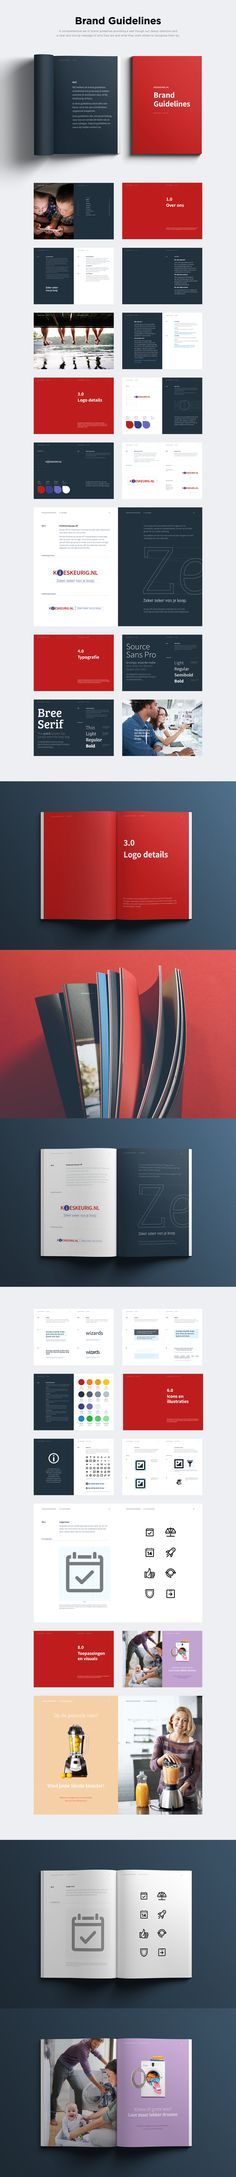 Brand Guidelines / Book